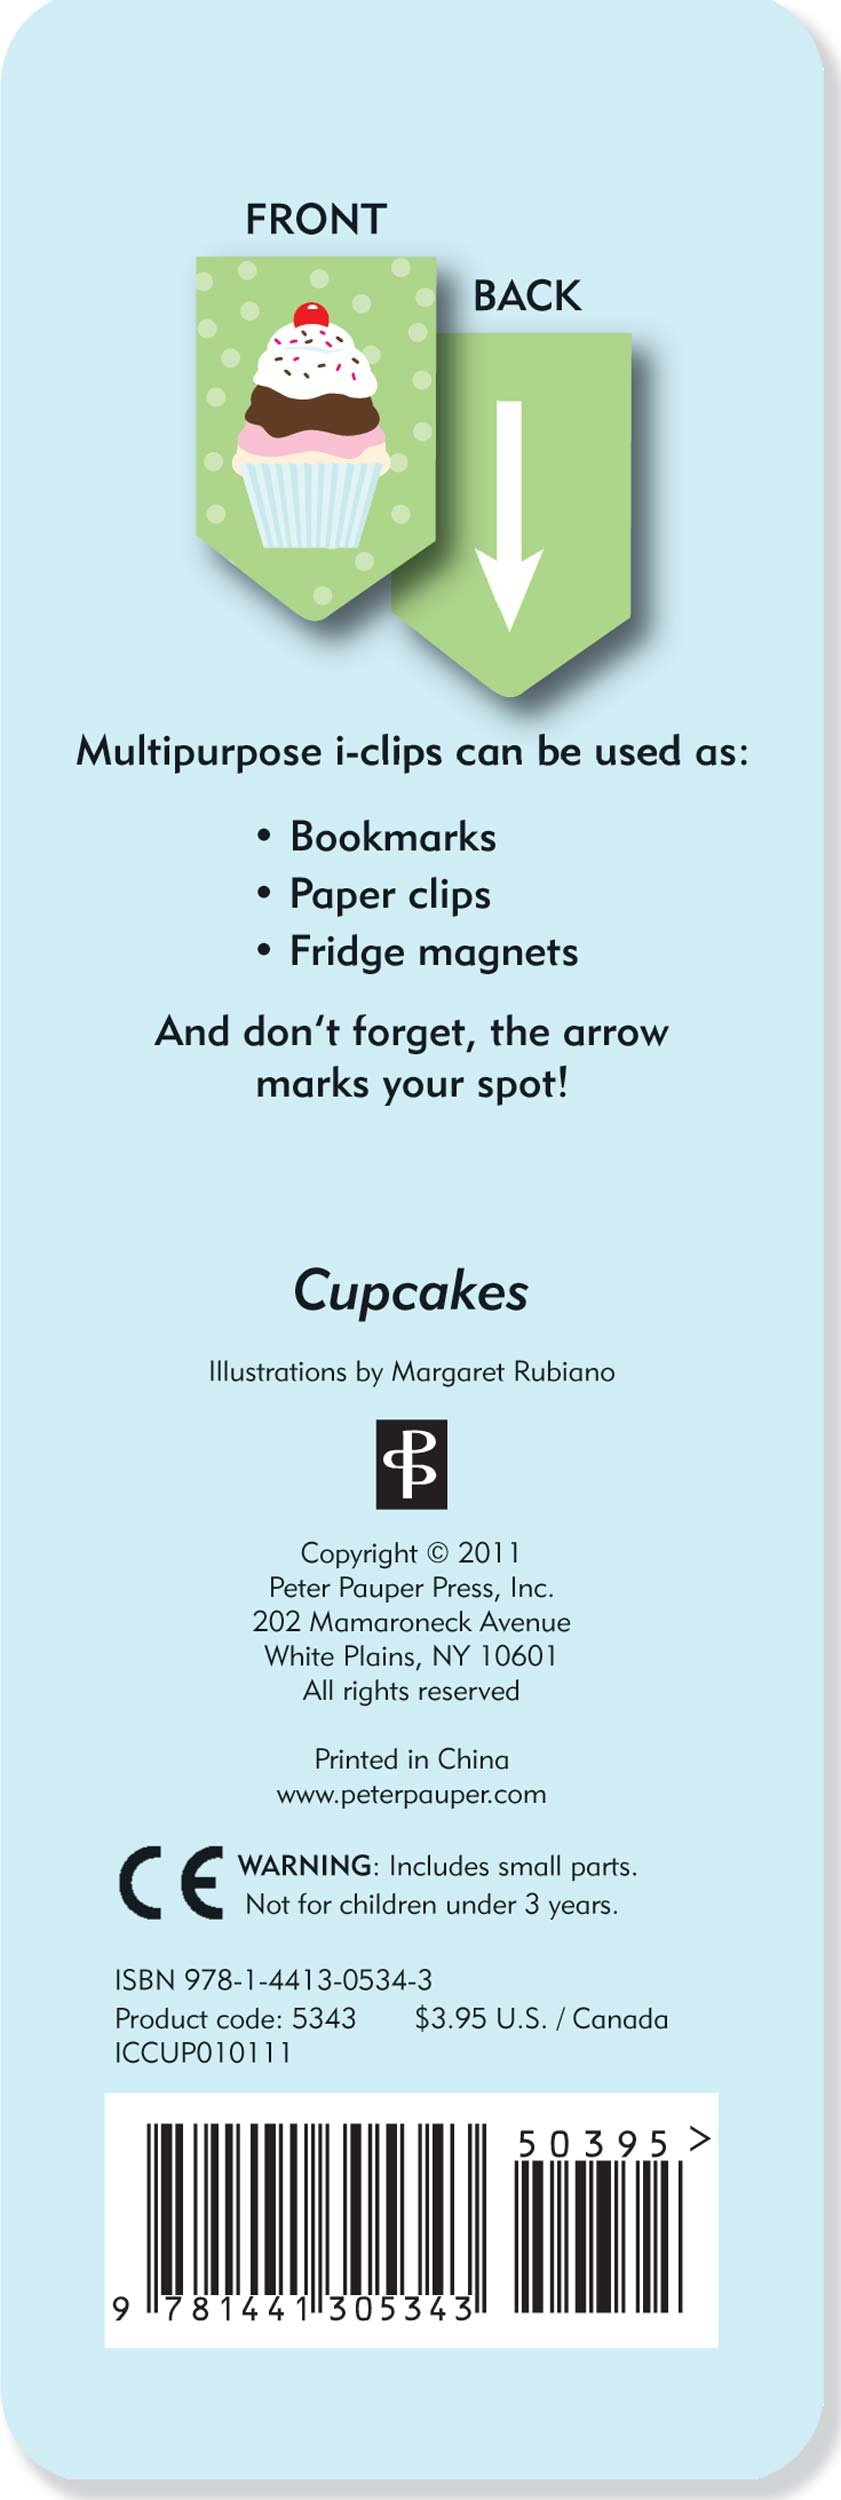 Cupcake i-clips Magnetic Bookmarks by Peter Pauper Press (Image #2)